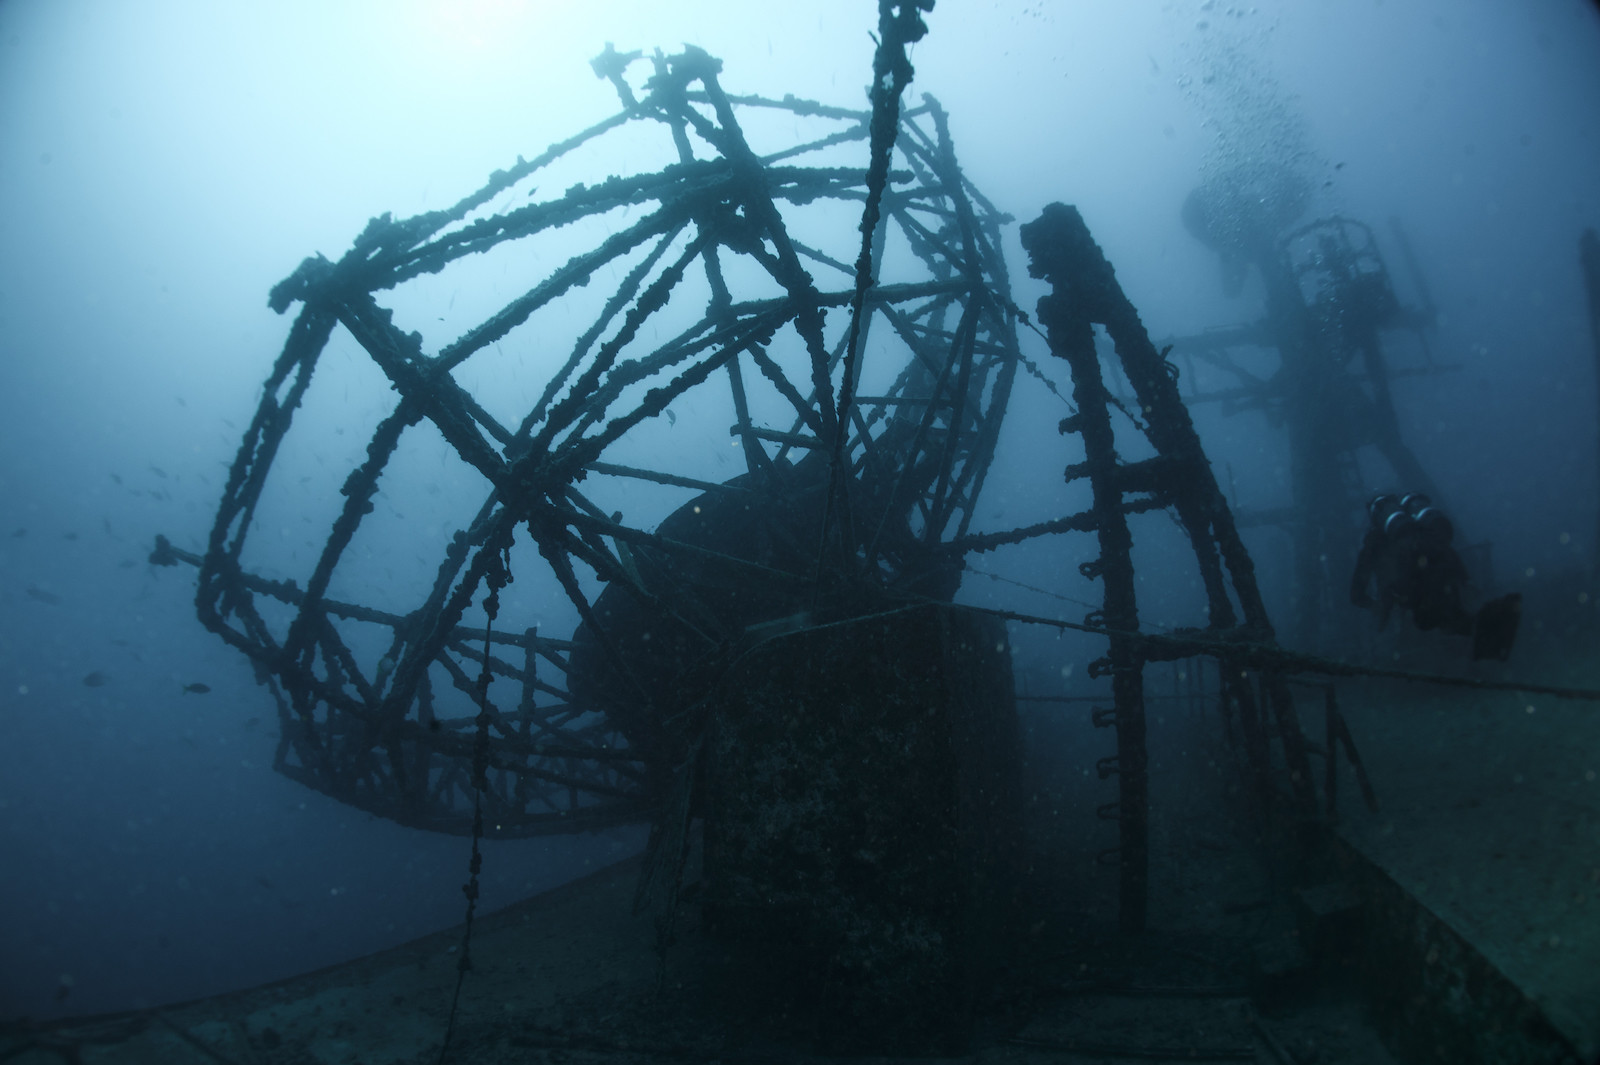 150113-N-YD328-095  KEY WEST, Fla. (Jan. 13, 2015) Construction Mechanic 1st Class Brandon Burrow, assigned to Underwater Construction Team One (UCT ONE), surveys the wreckage of USNS General Hoyt S. Vandenberg (T-AGM-10) during diver training aboard the U.S. Army large landing craft USAV Matamoros (LCU-2026). Diver training is a two-week, joint training evolution designed to reinforce standard operating procedures, qualify personnel, maintain proficiency, and evaluate dive protocol during scuba, surface supplied and recompression chamber operations. (U.S. Navy photo by Mass Communication Specialist 2nd Class Nicholas S. Tenorio/Released)